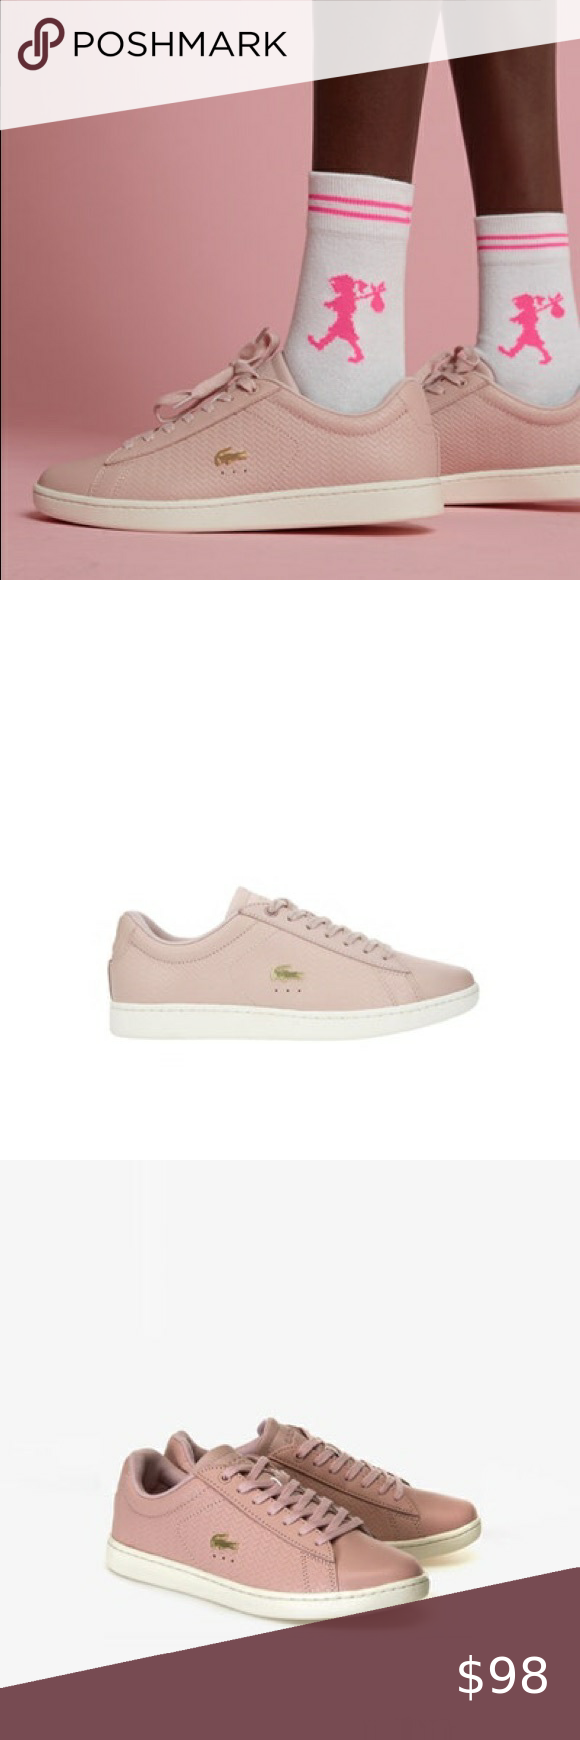 New Womens Lacoste Pink Carnaby Evo Leather Trainers Court Lace Up